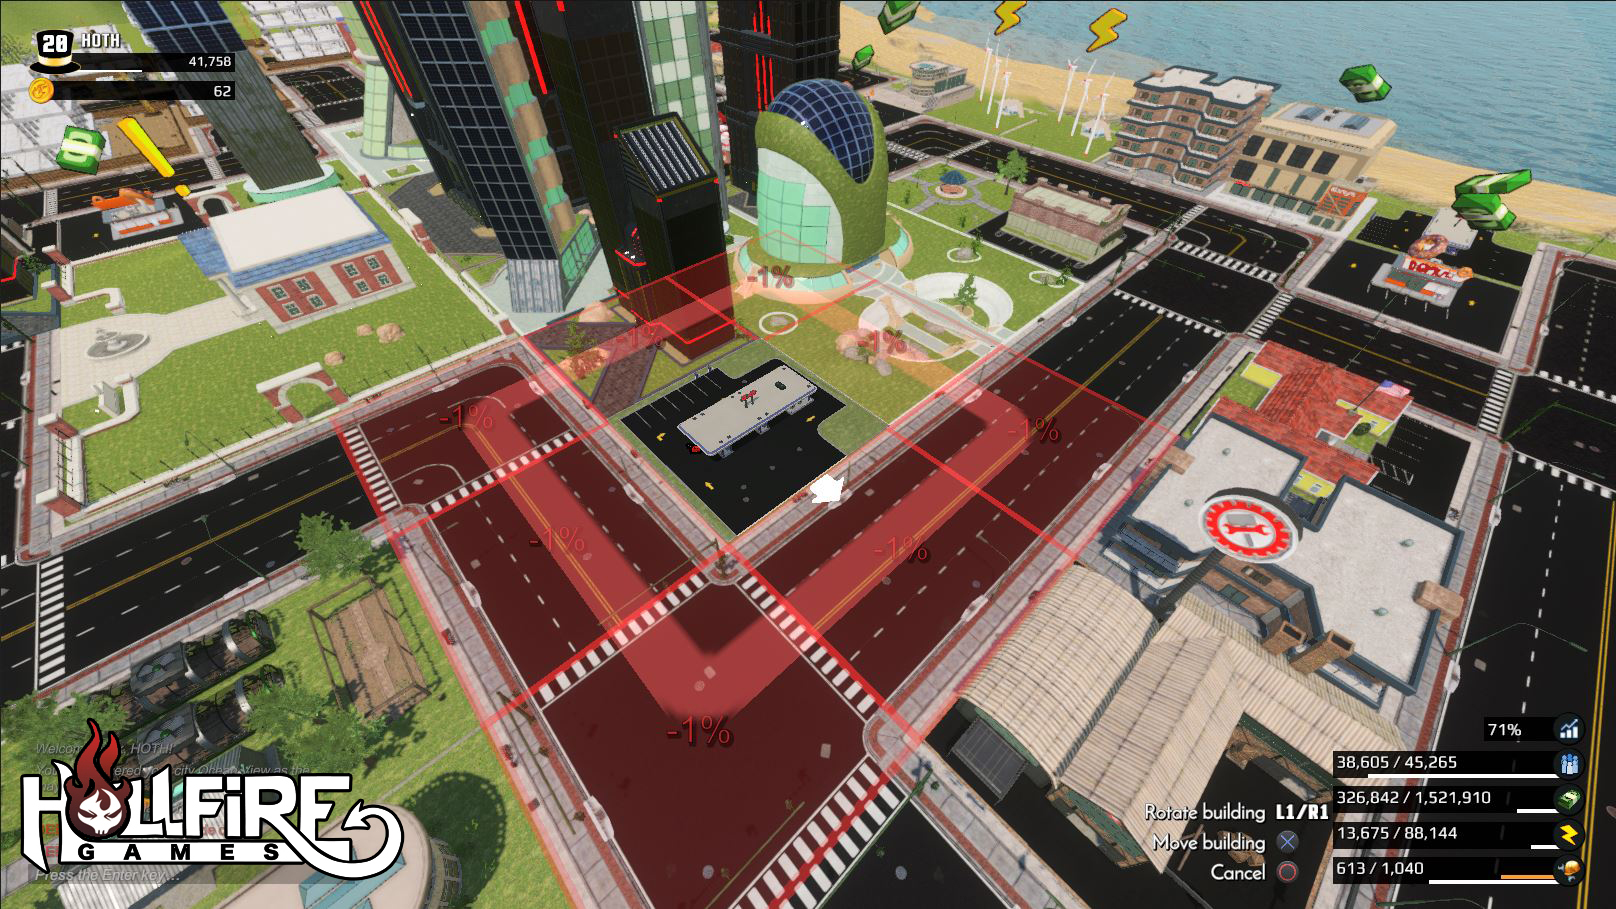 Creating a Booming Economy in Big City Stories, C.Birch, Nov 23, 2015, 10:43 PM, YourPSHome.net, jpg, AoE-with-logo.jpg